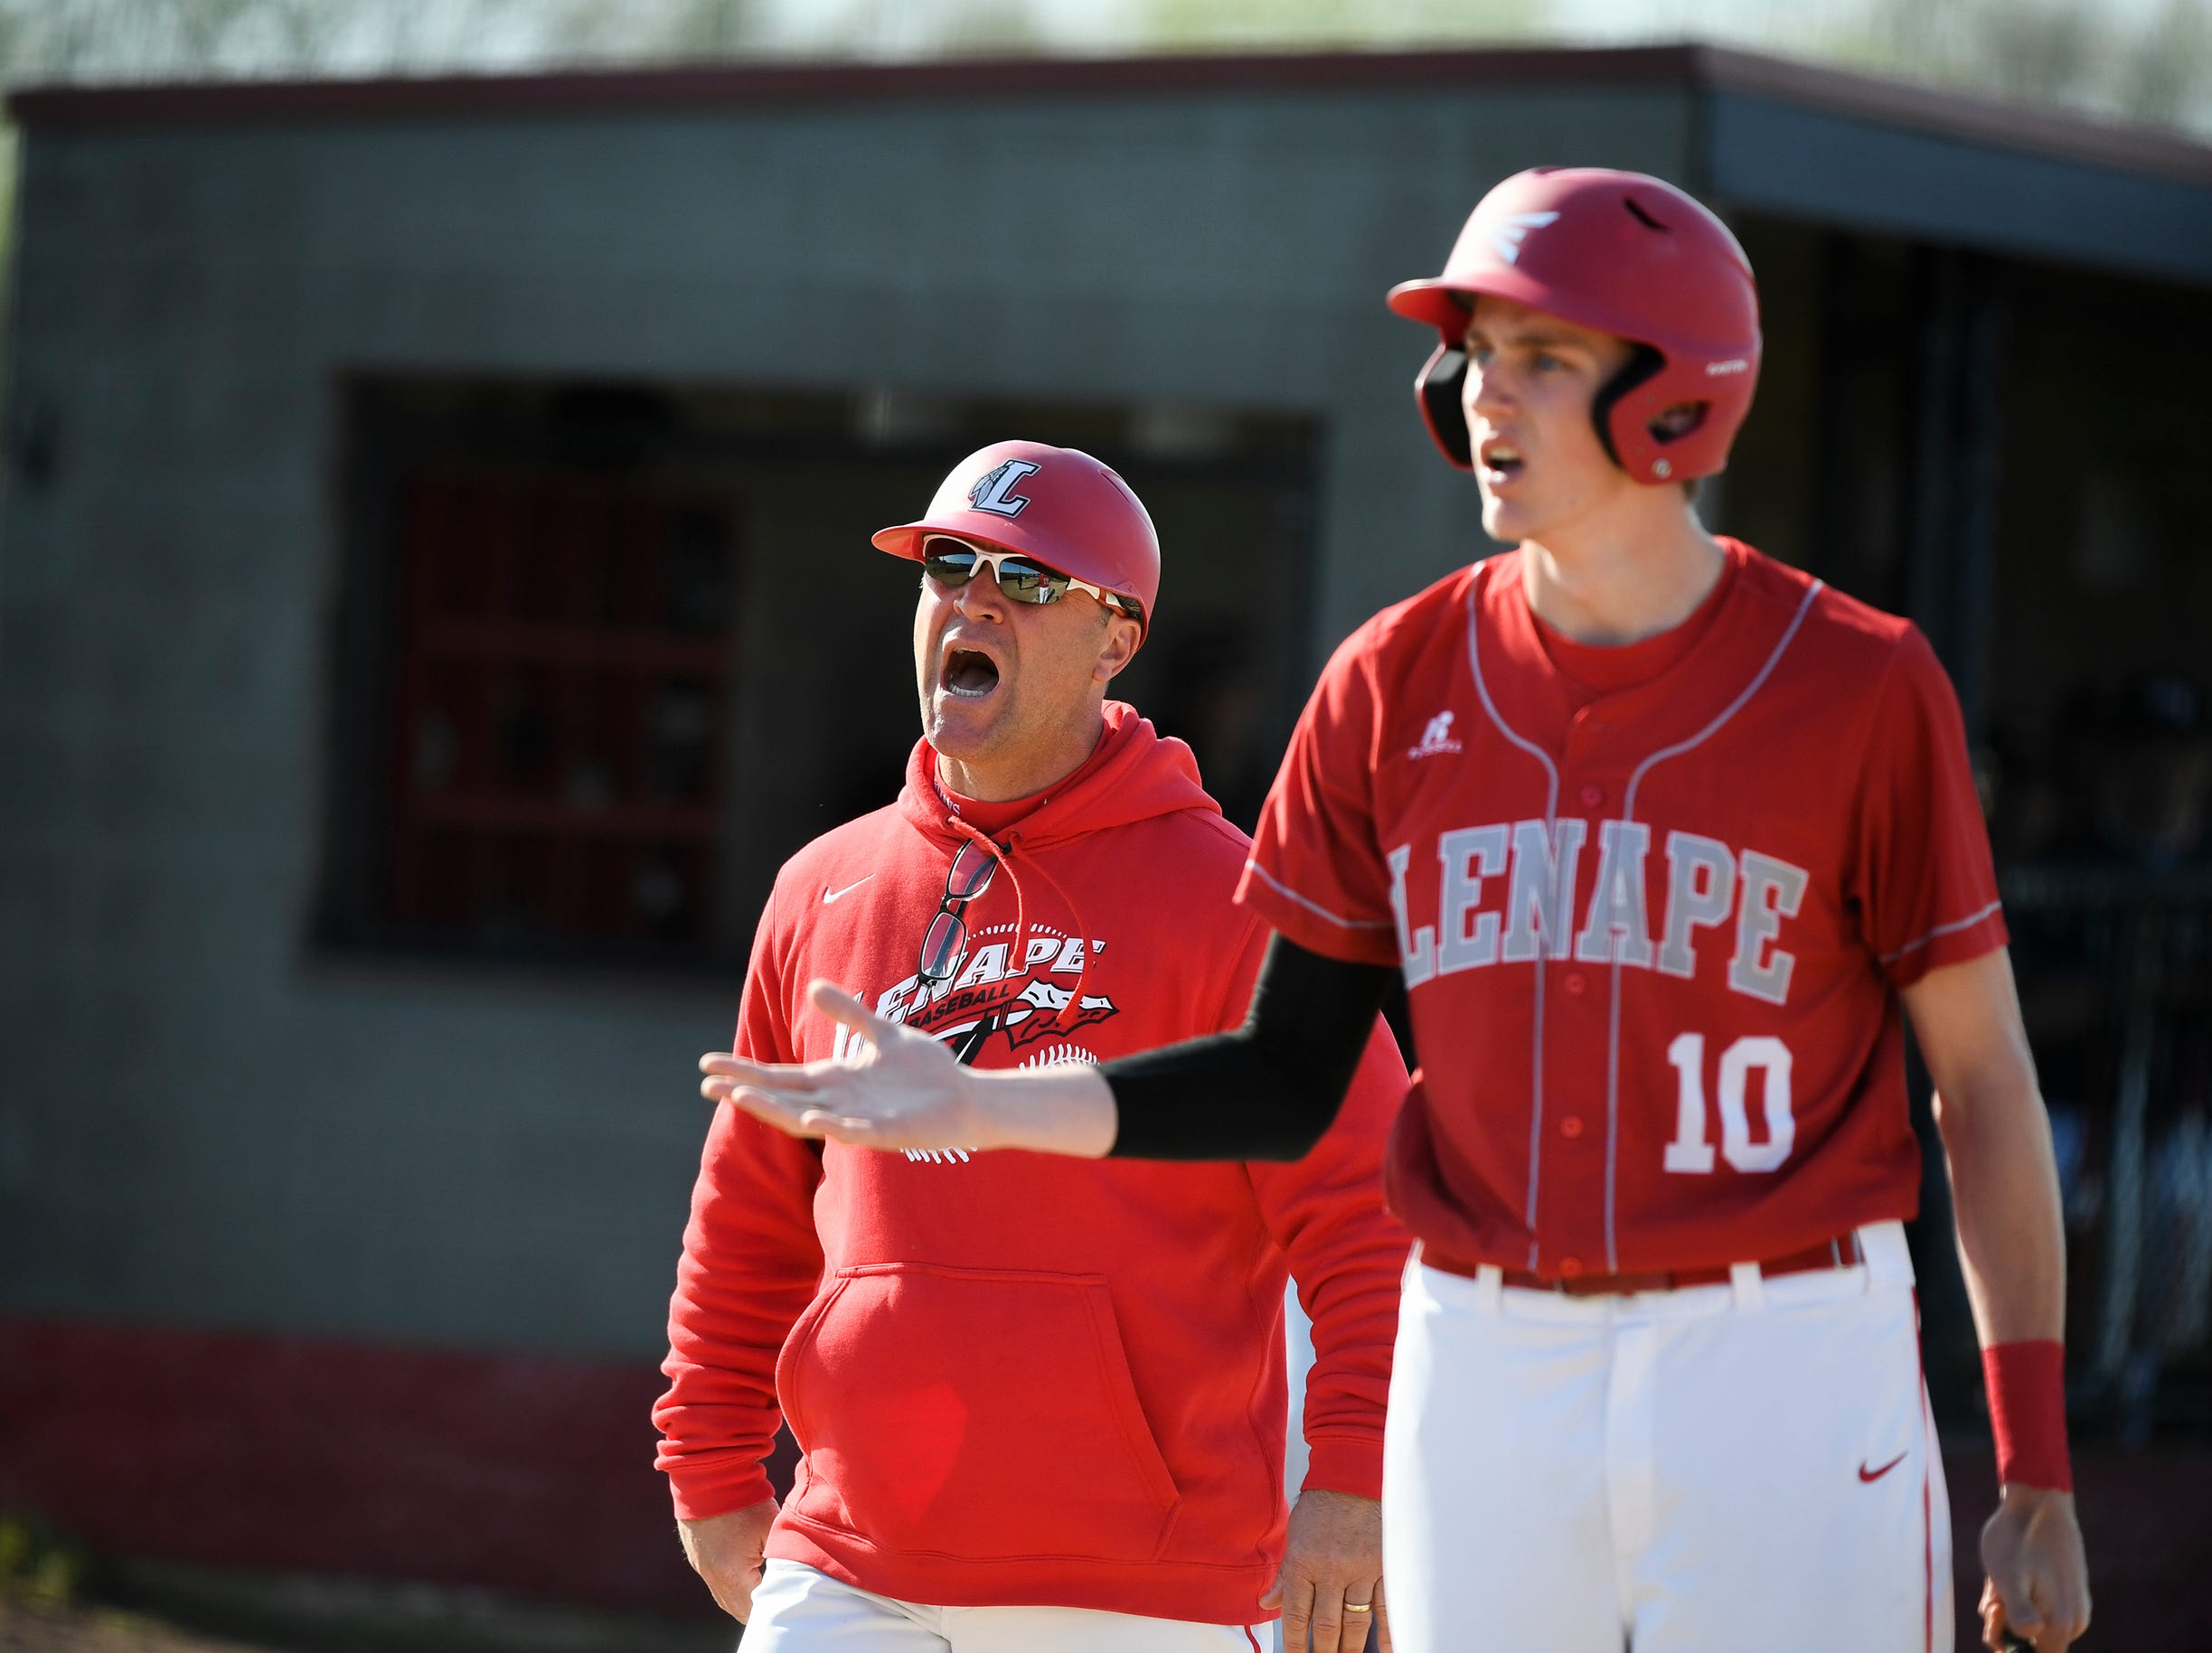 Lenape head coach Phil Fiore and Steve Matlack (10) argue over a called strike while Matlack claimed to be asking for time Tuesday, April 16, 2019 in Medford, N.J. Bishop Eustace won 5-3 and head coach Sam Tropiano earned his record-setting 673rd win.